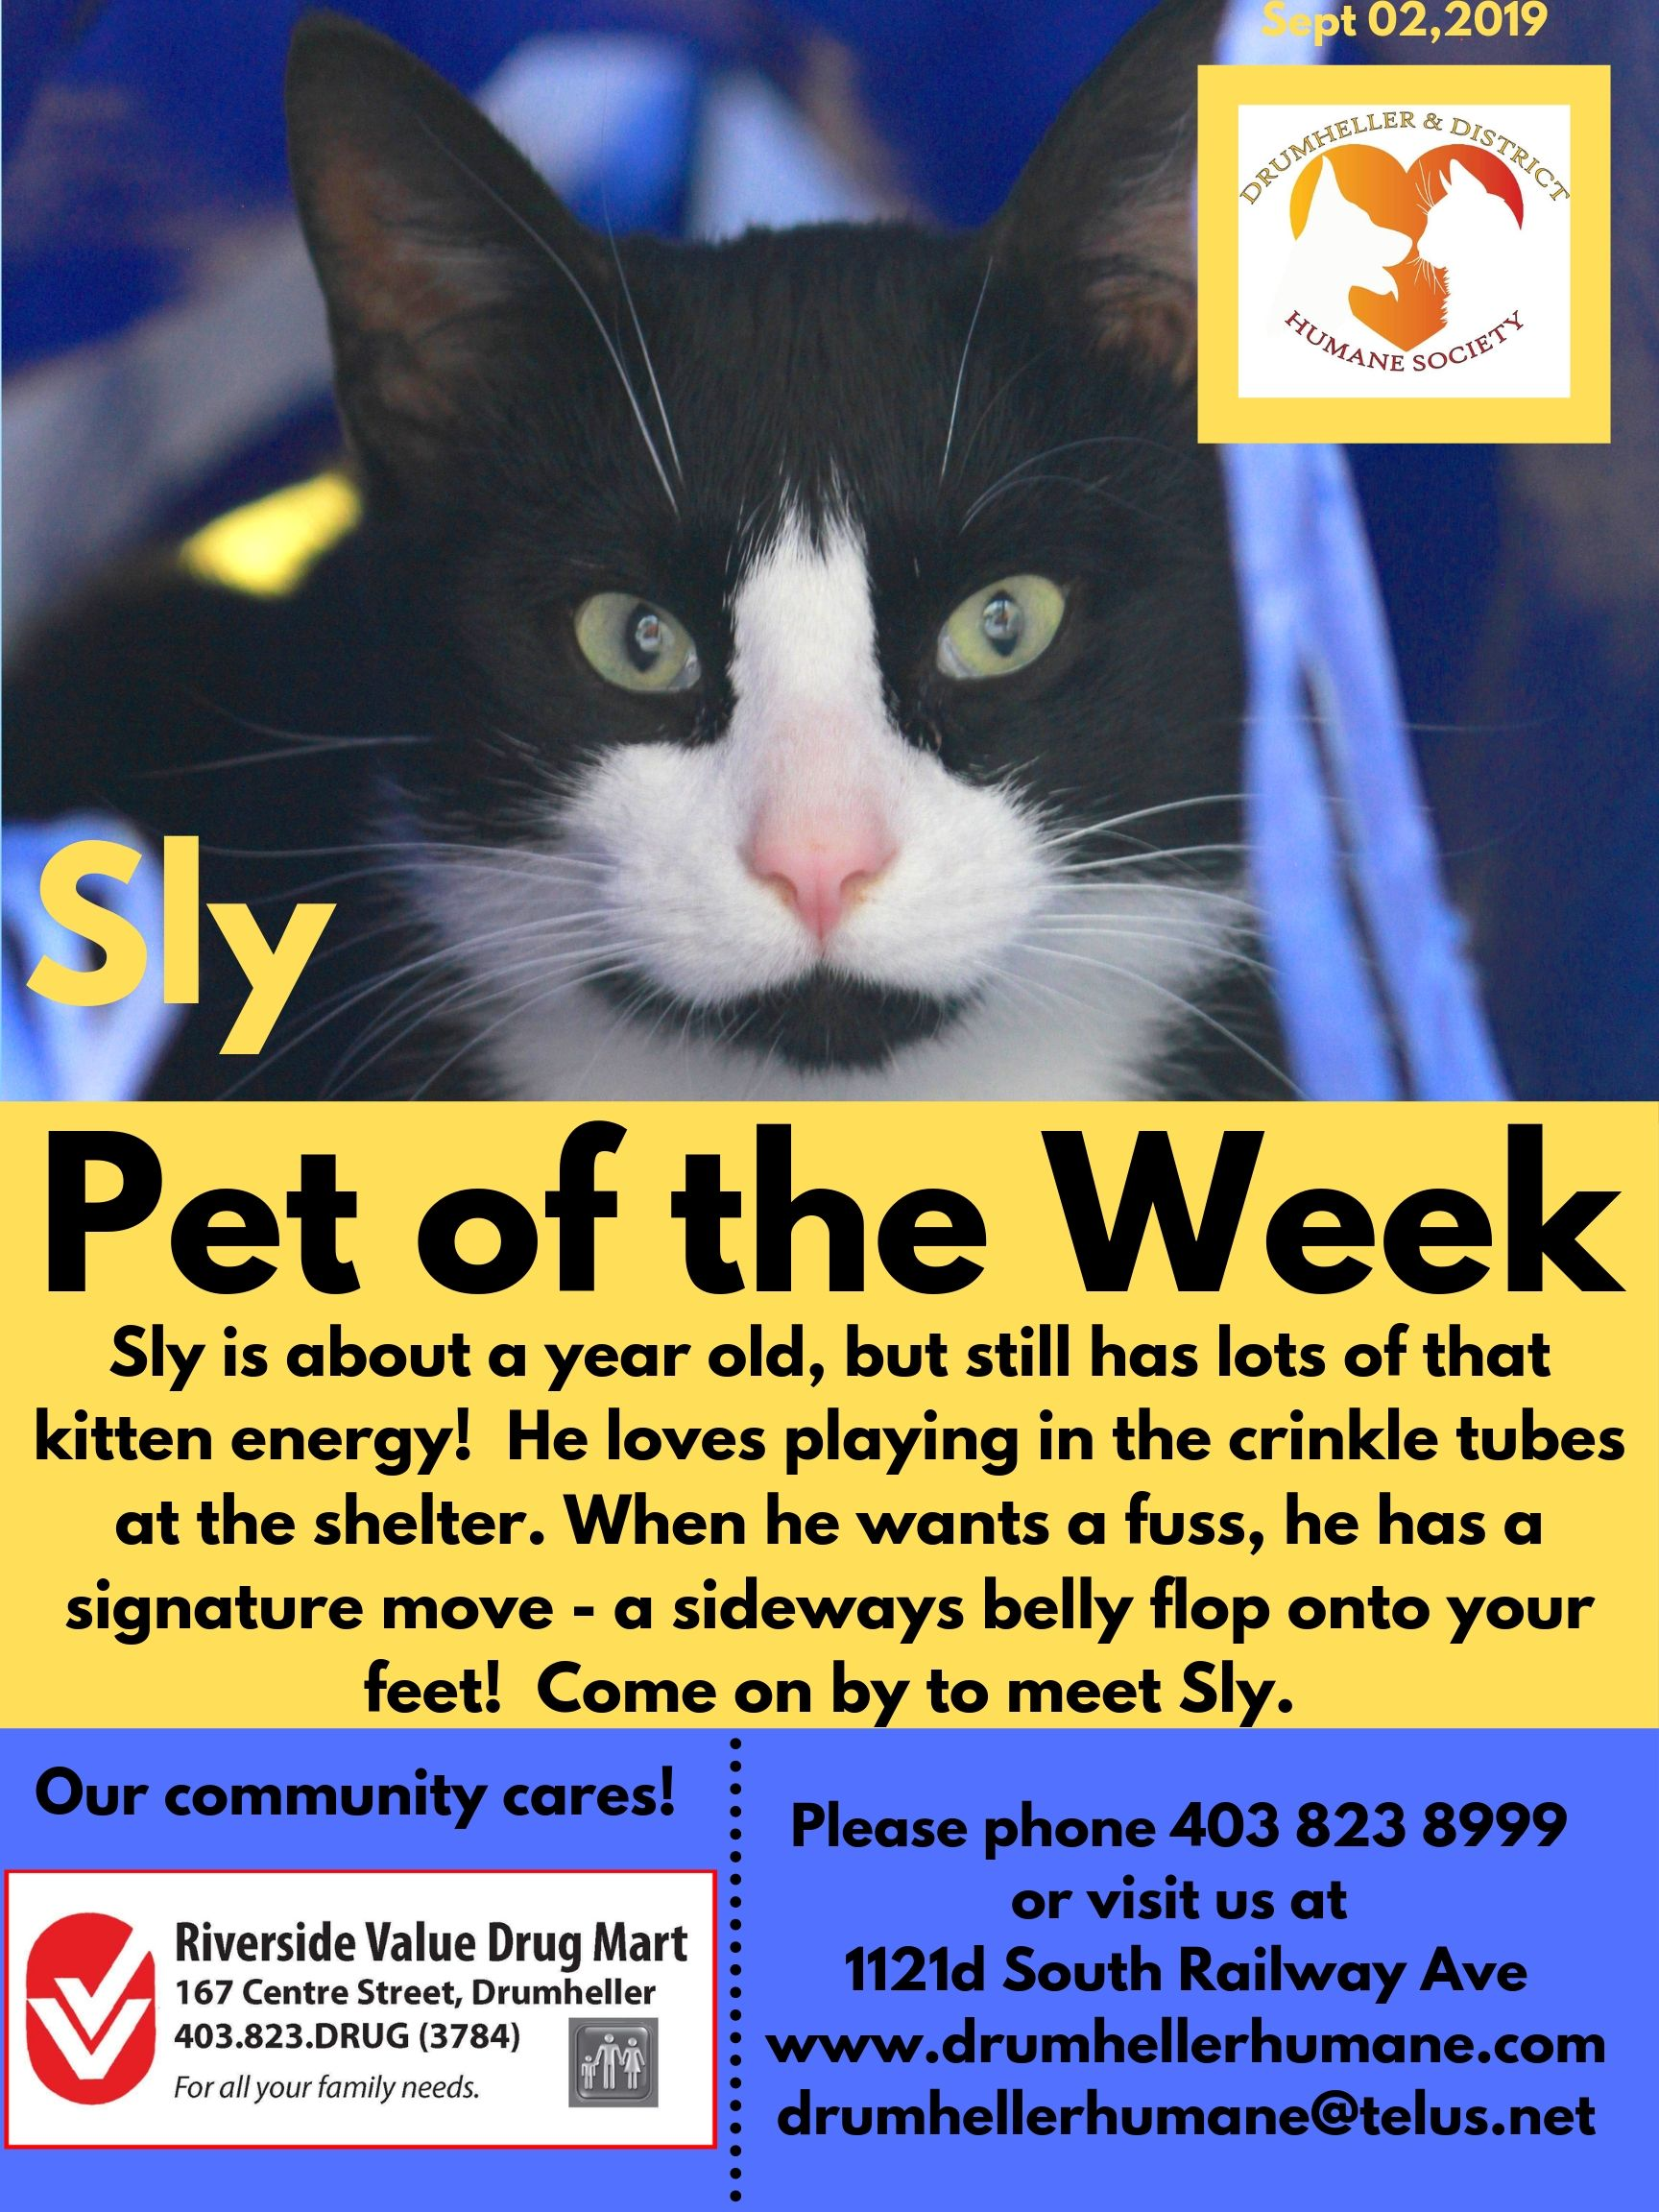 Sly Pet of the Week